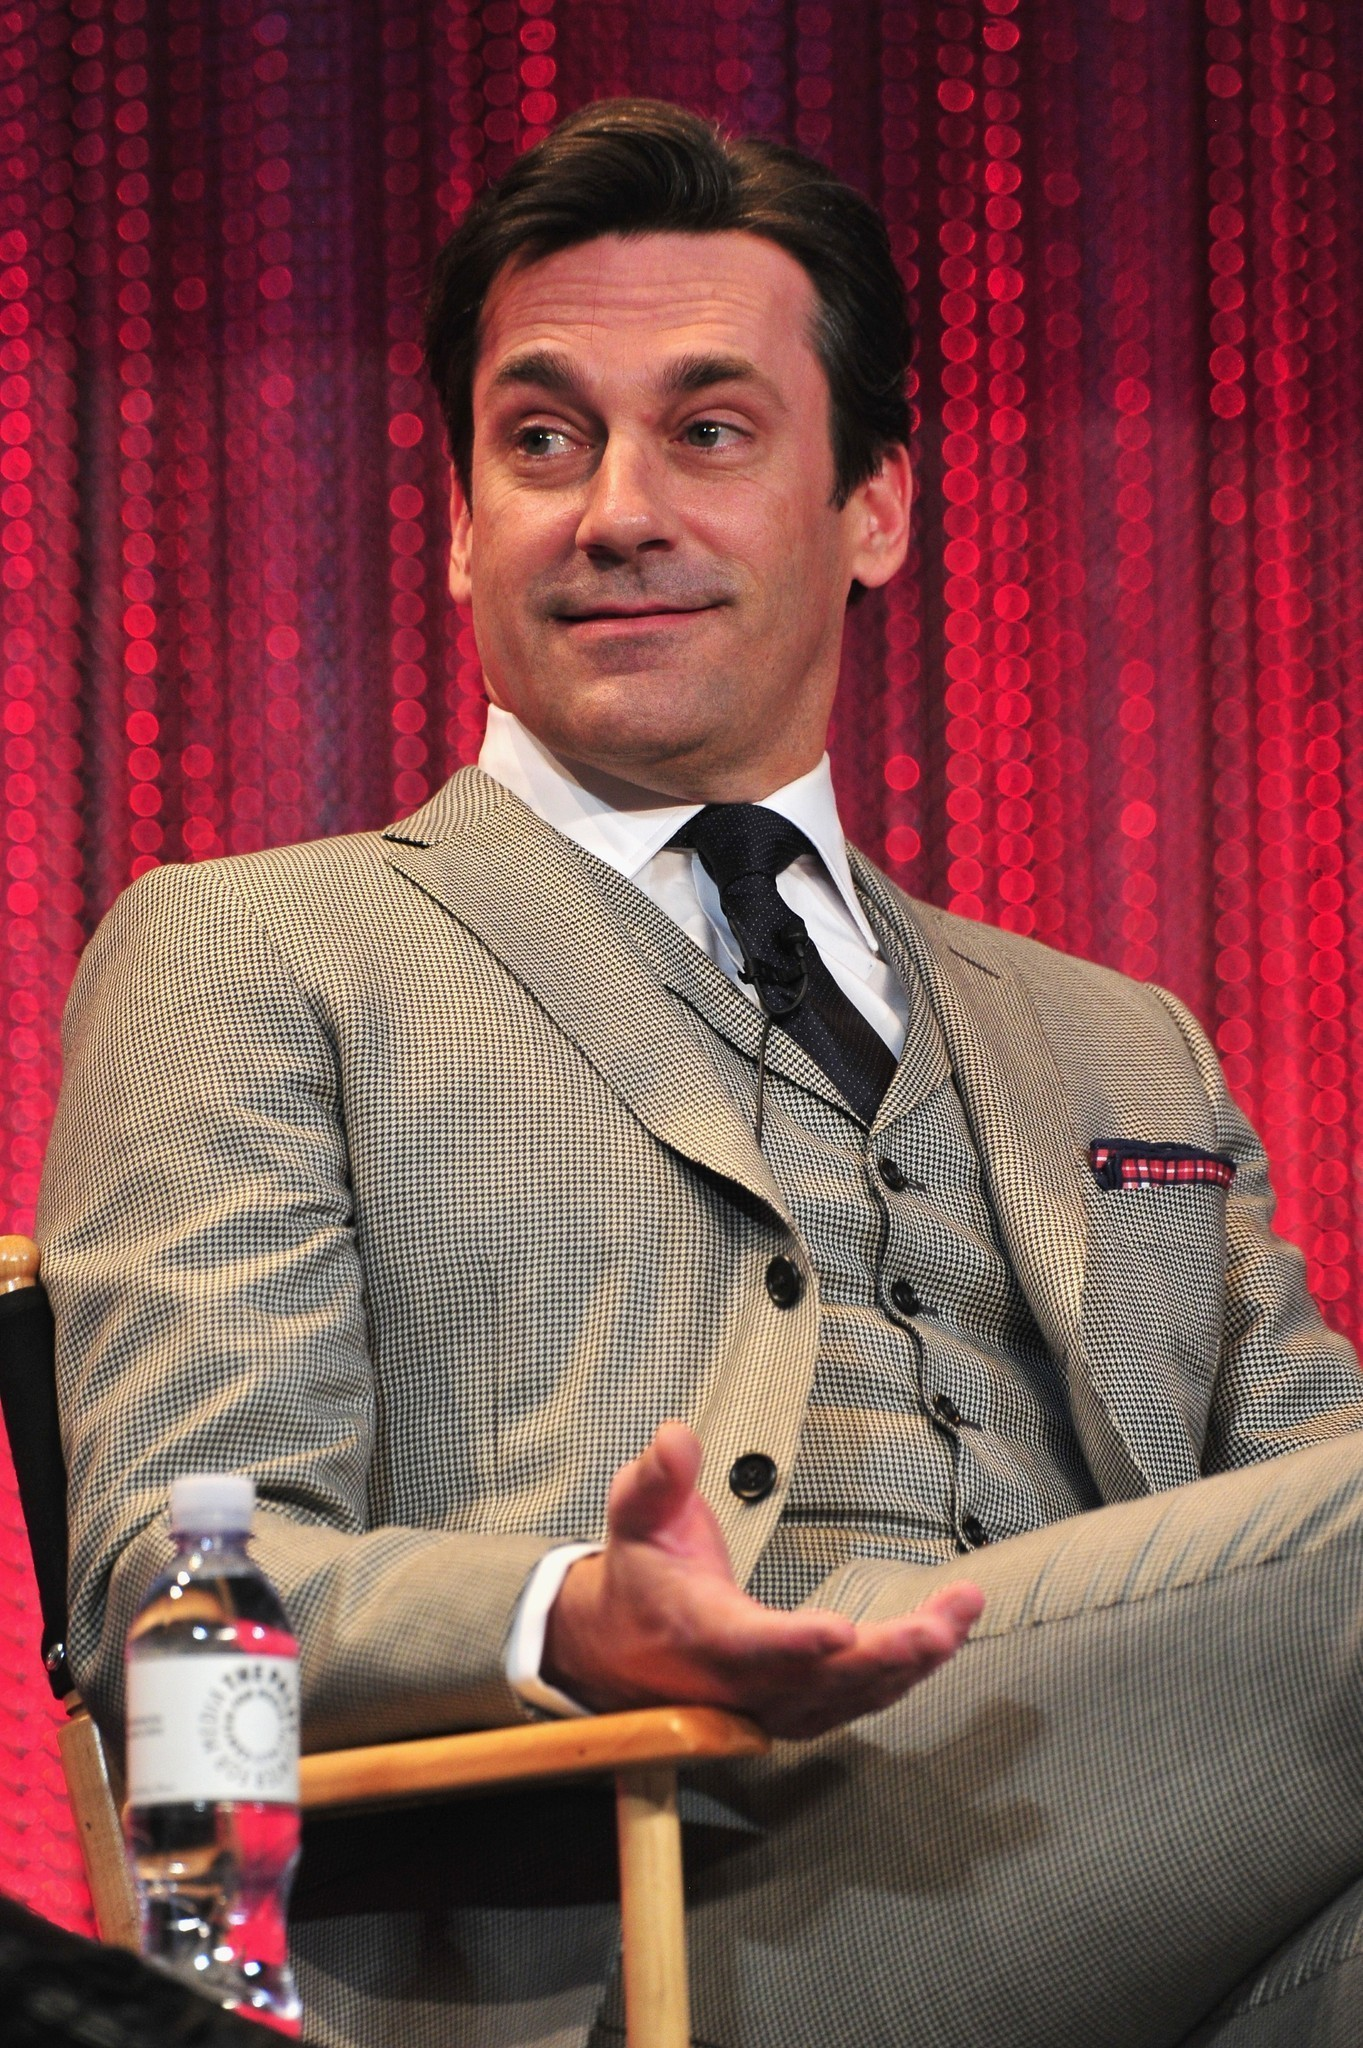 4 Replies to Jon hamm dating show clip art